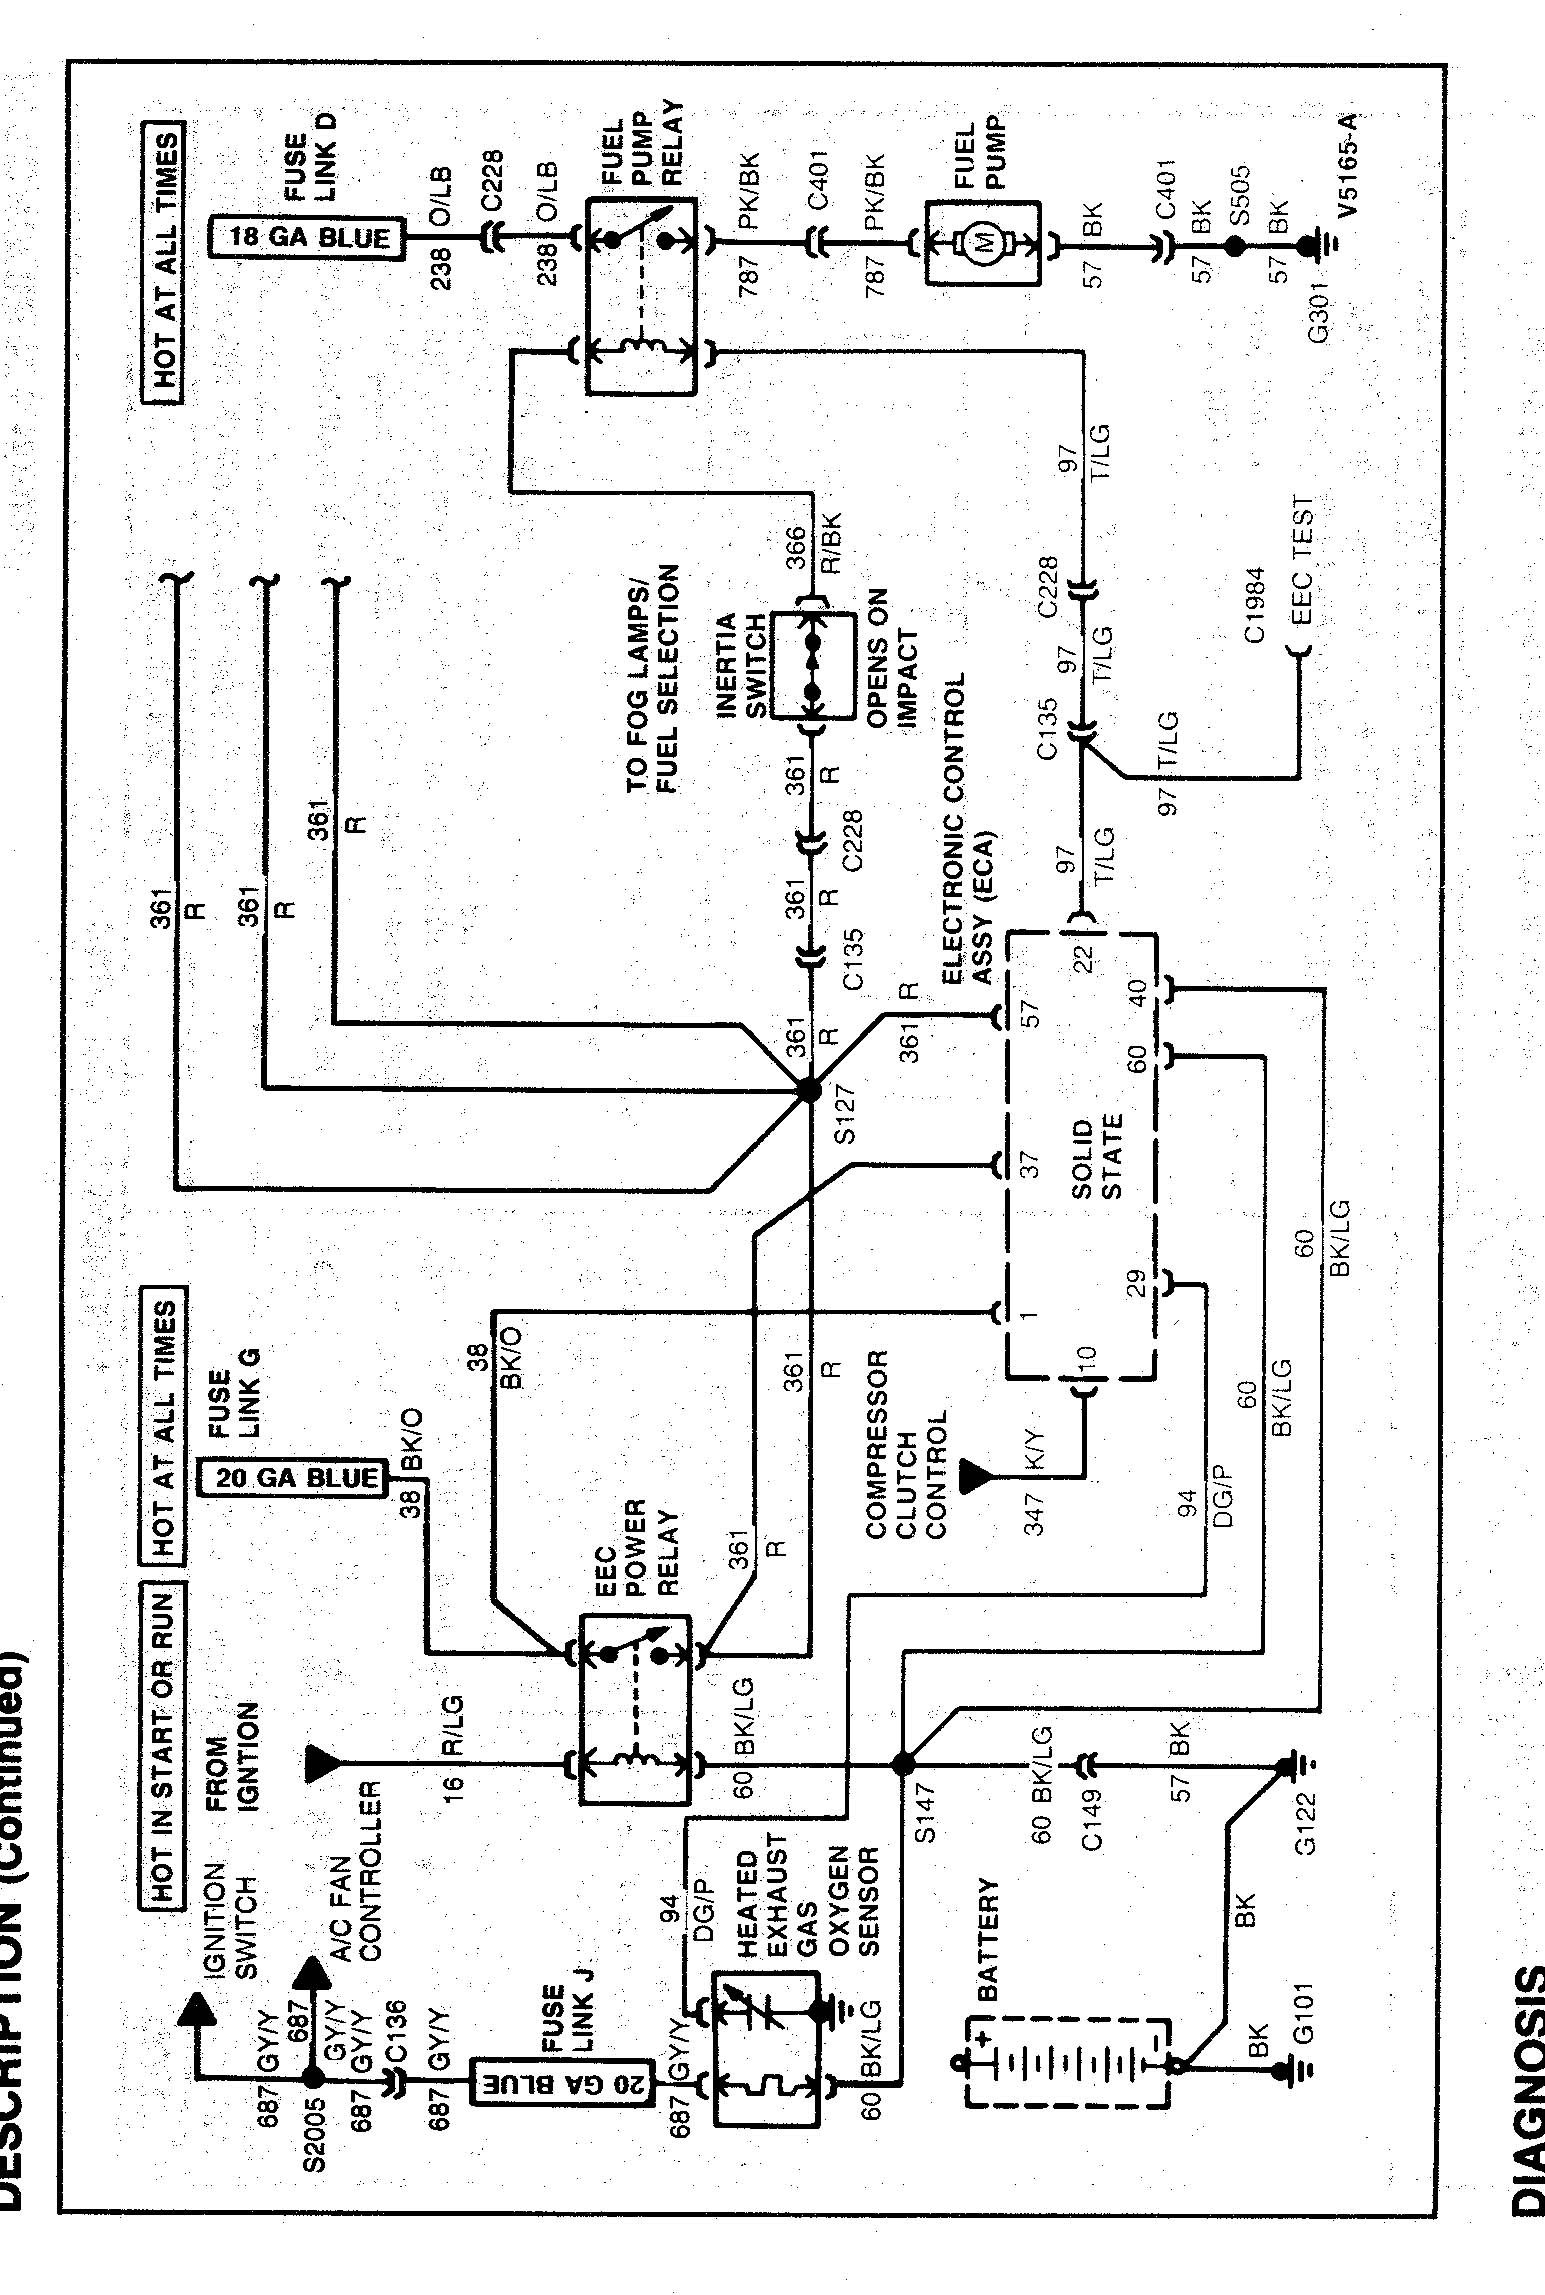 1993 ford ranger fuel pump wiring diagram human taste buds mustang ignition switch free